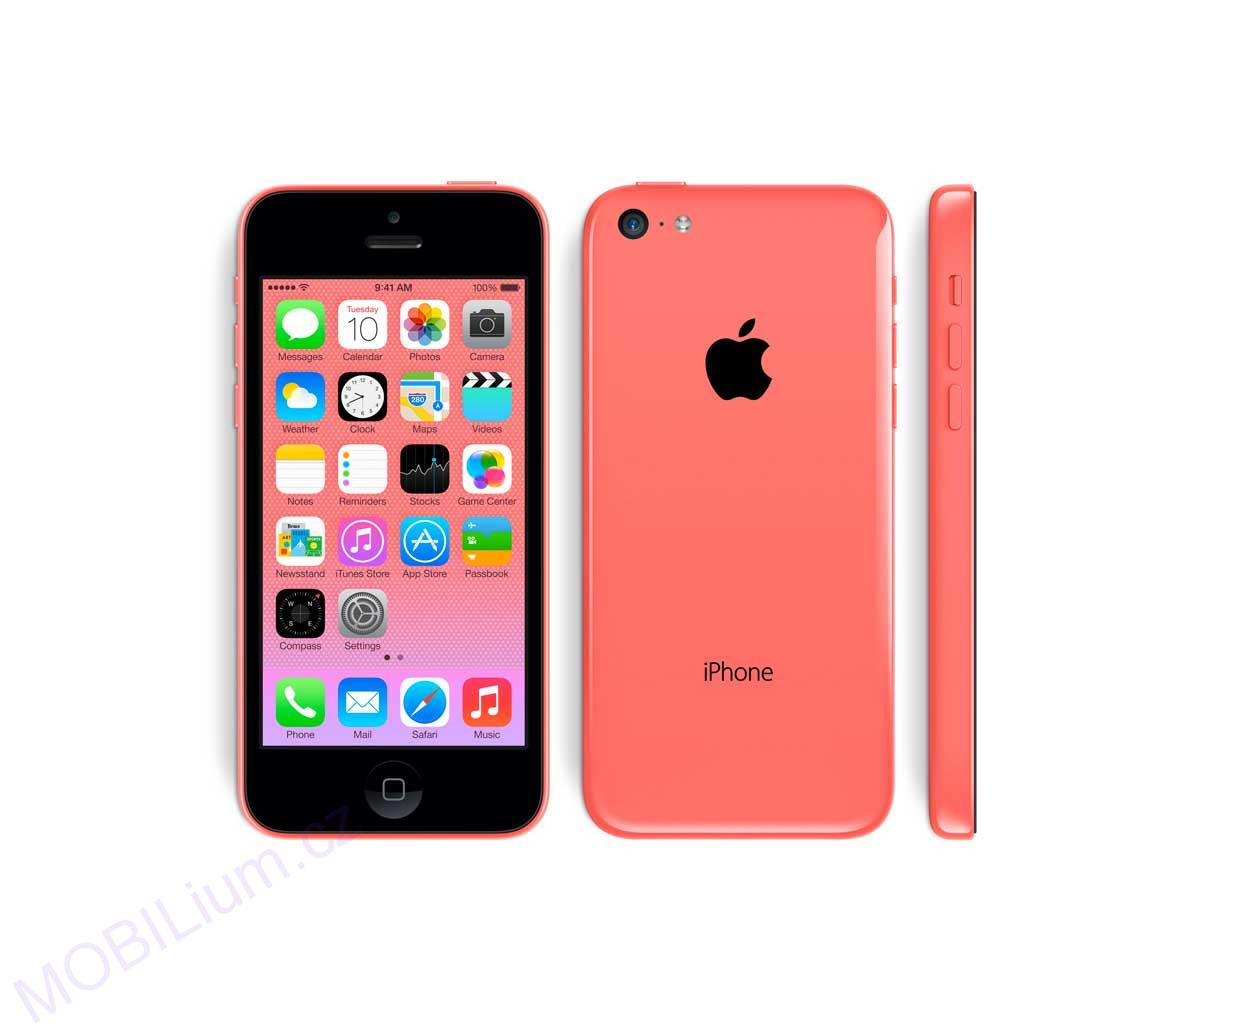 Apple iPhone 5C 32GB Pink (Refurbished)